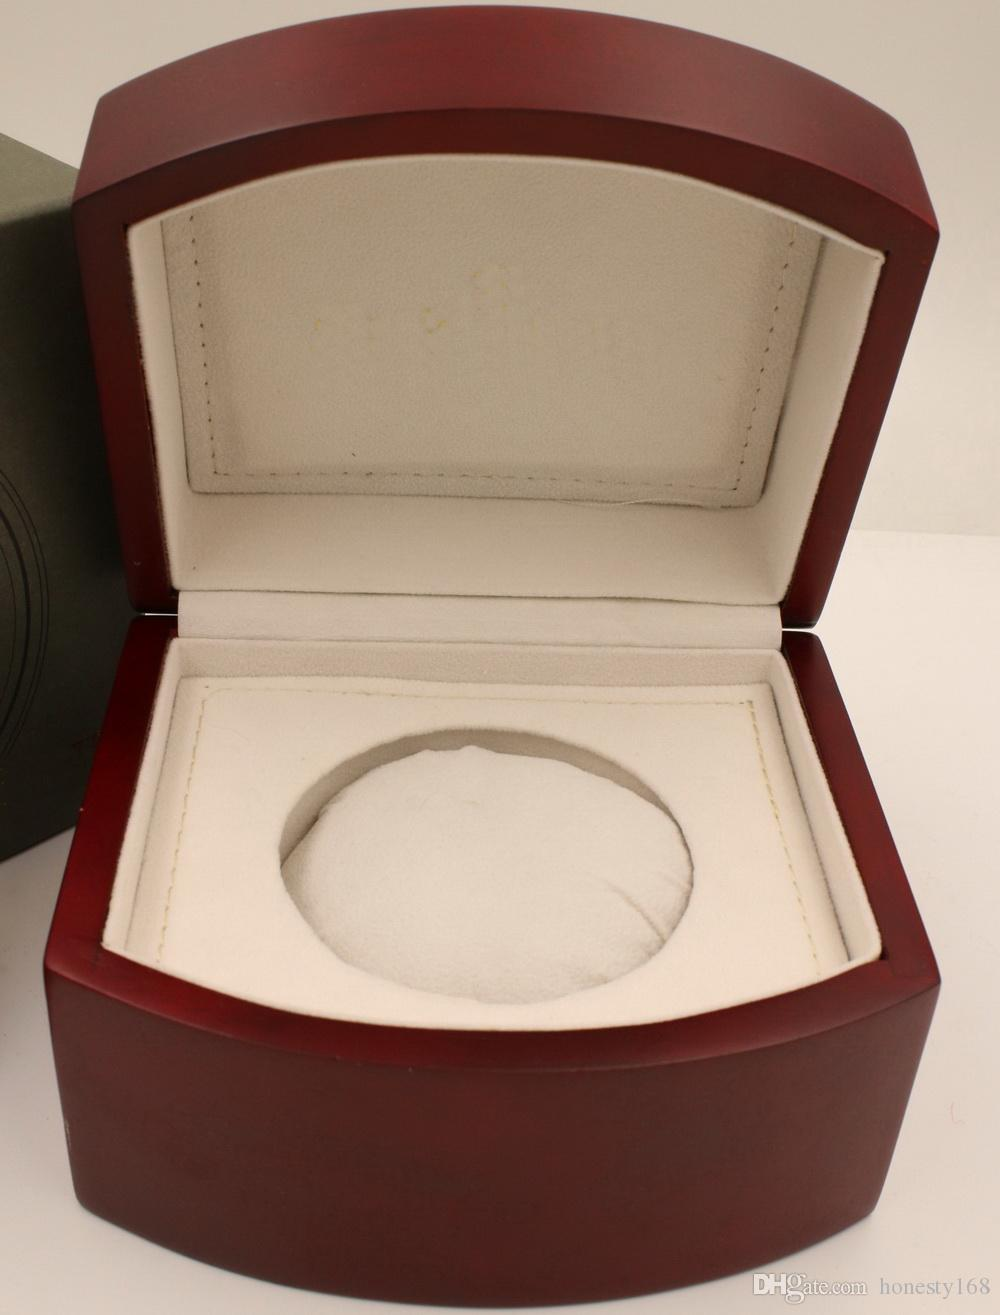 whole best selling mens fashion watch boxes red box swiss whole best selling mens fashion watch boxes red box swiss brand men watch box and paper